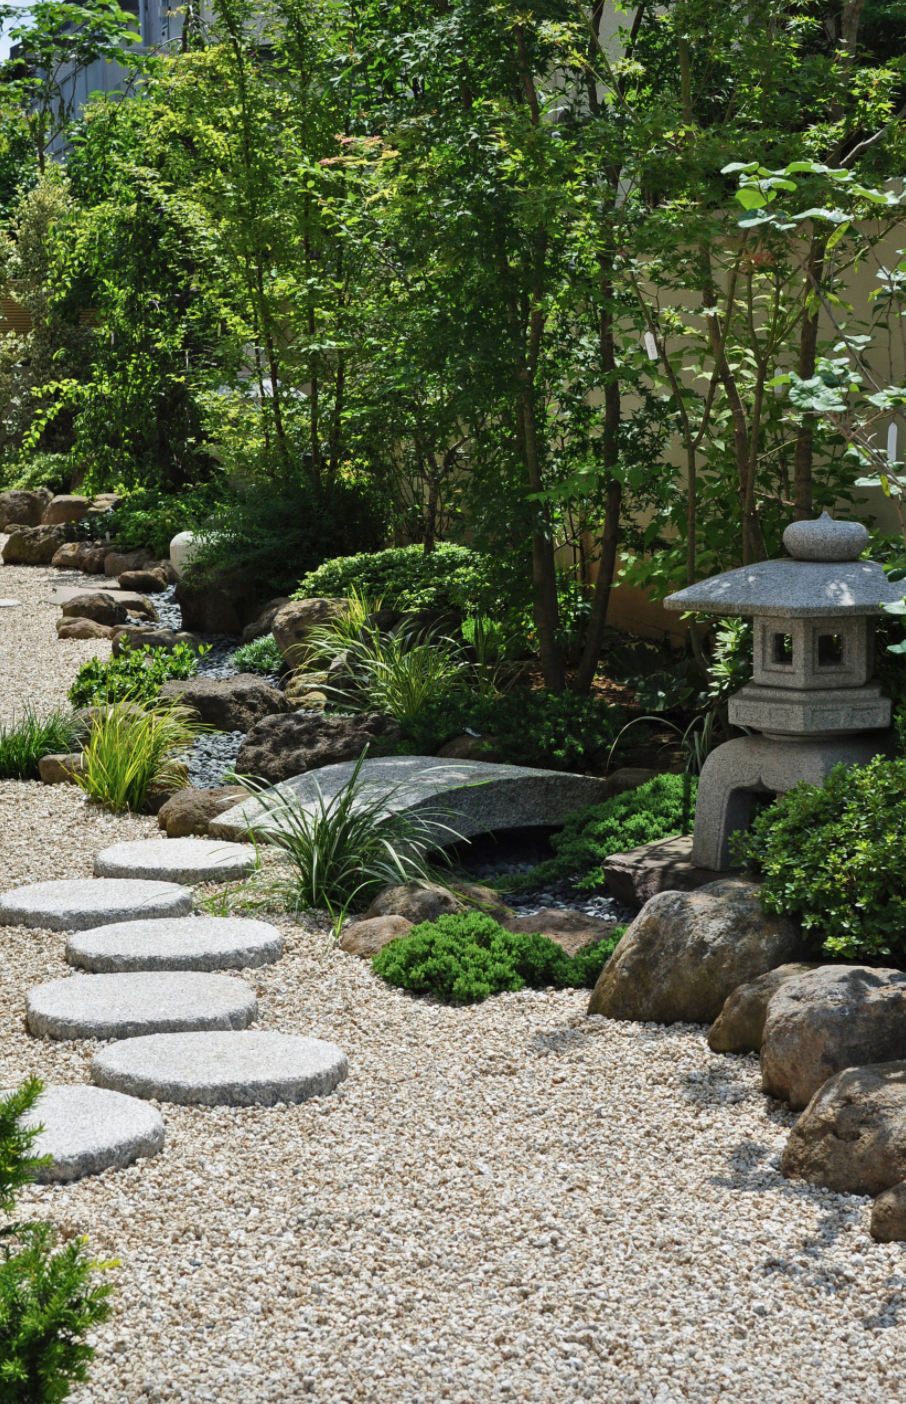 Japanese Stone Garden Japanese Zen Garden With Foot Stones And